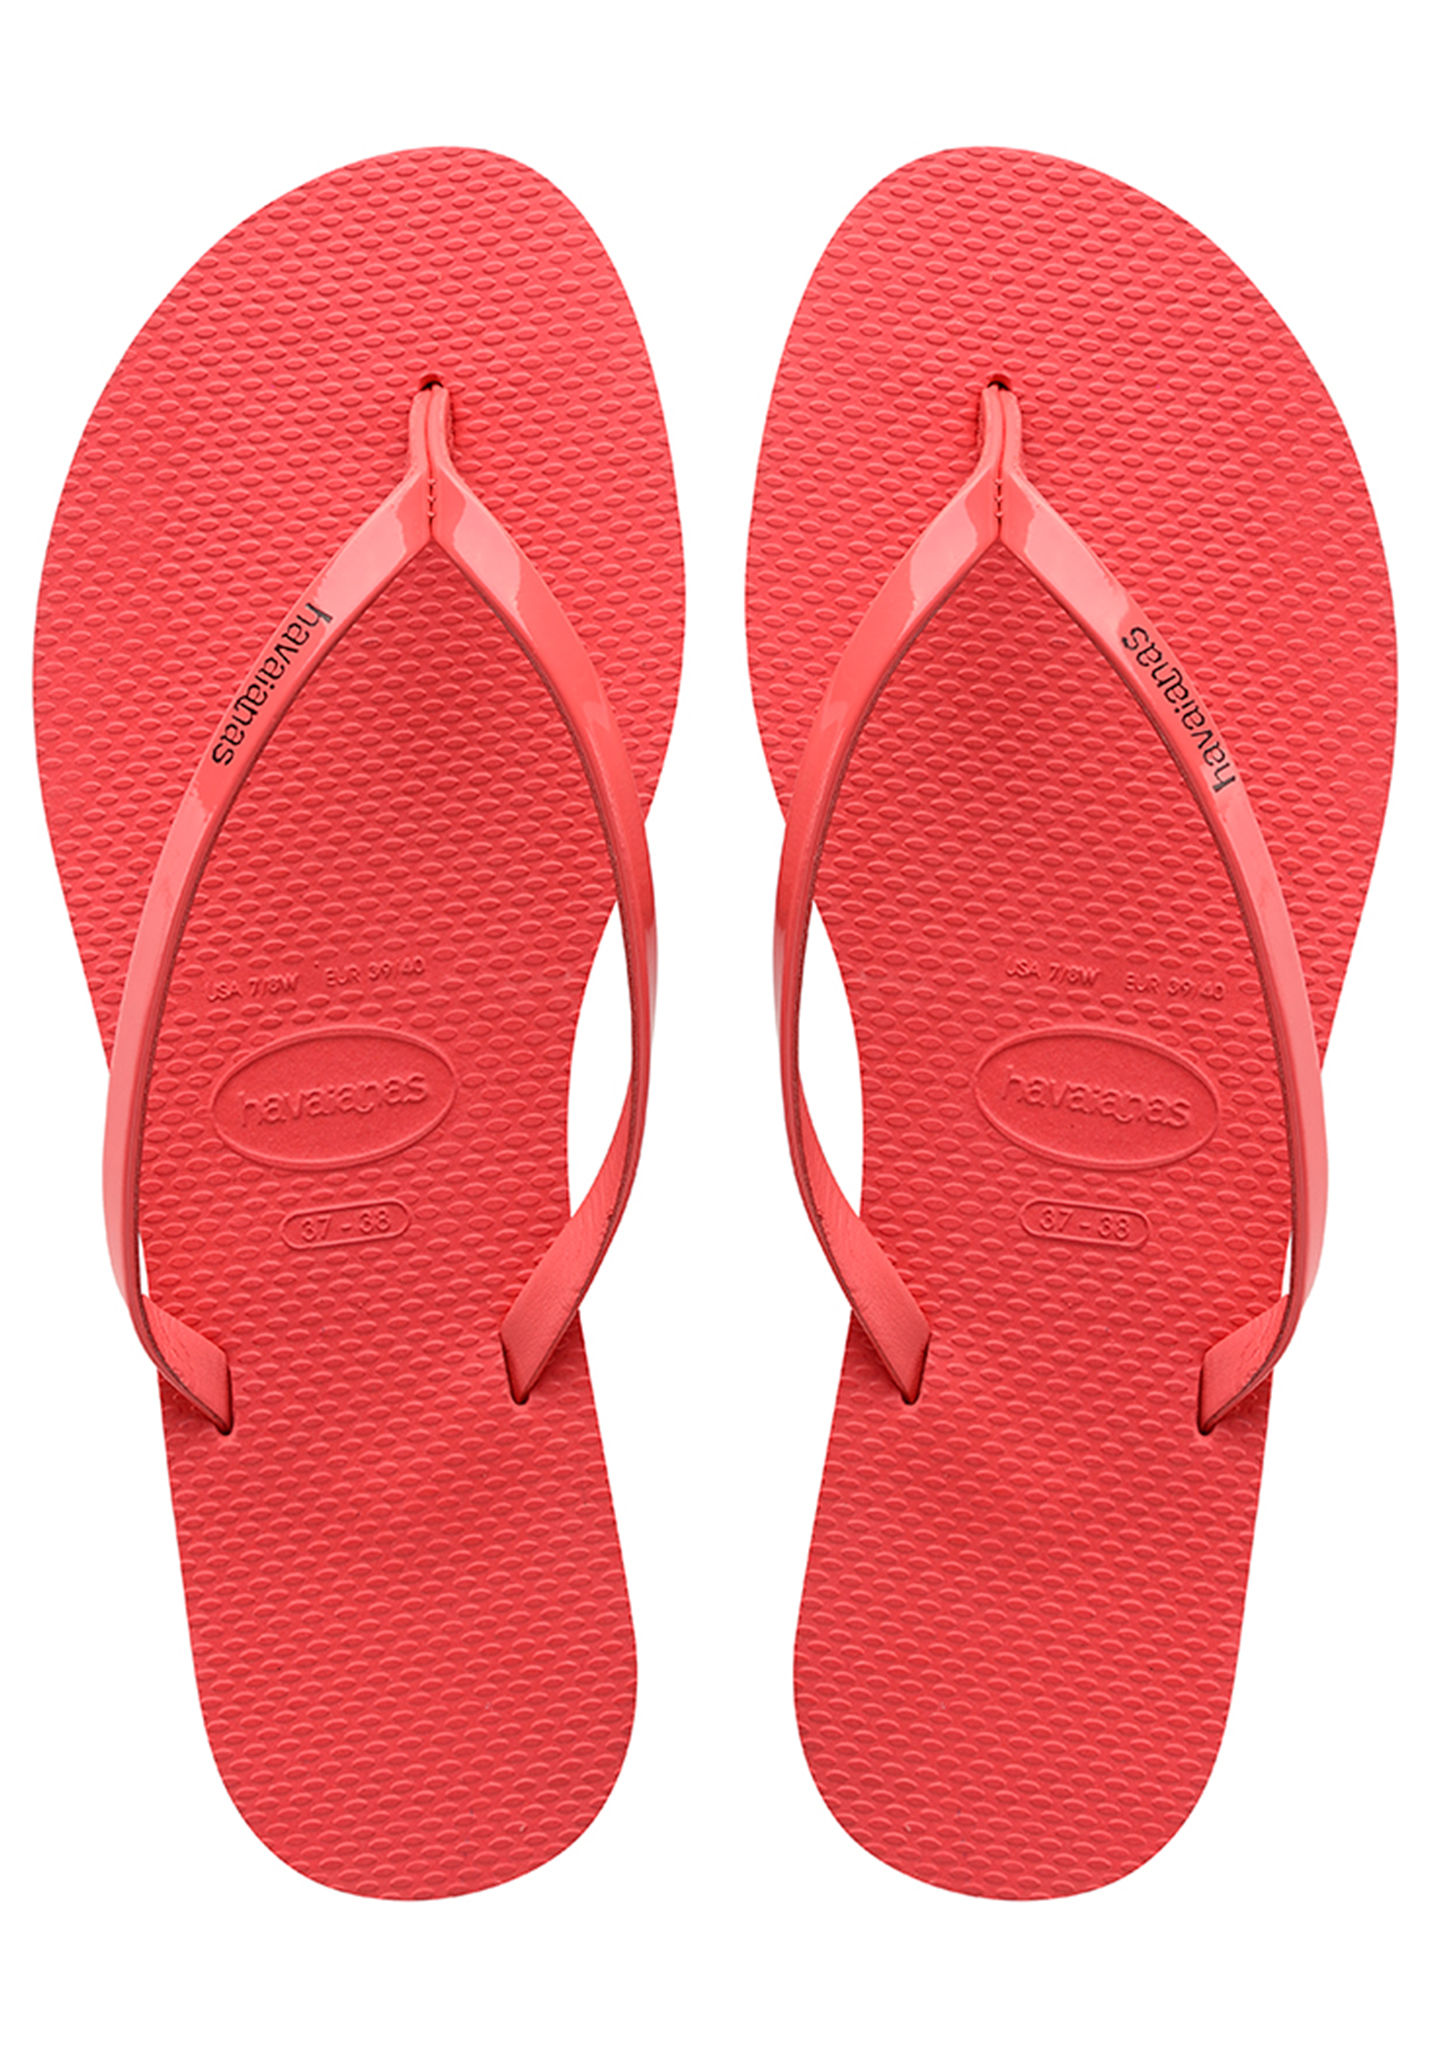 cec0970b66eb6f HAVAIANAS You Metallic - Sandals for Women - Red - Planet Sports